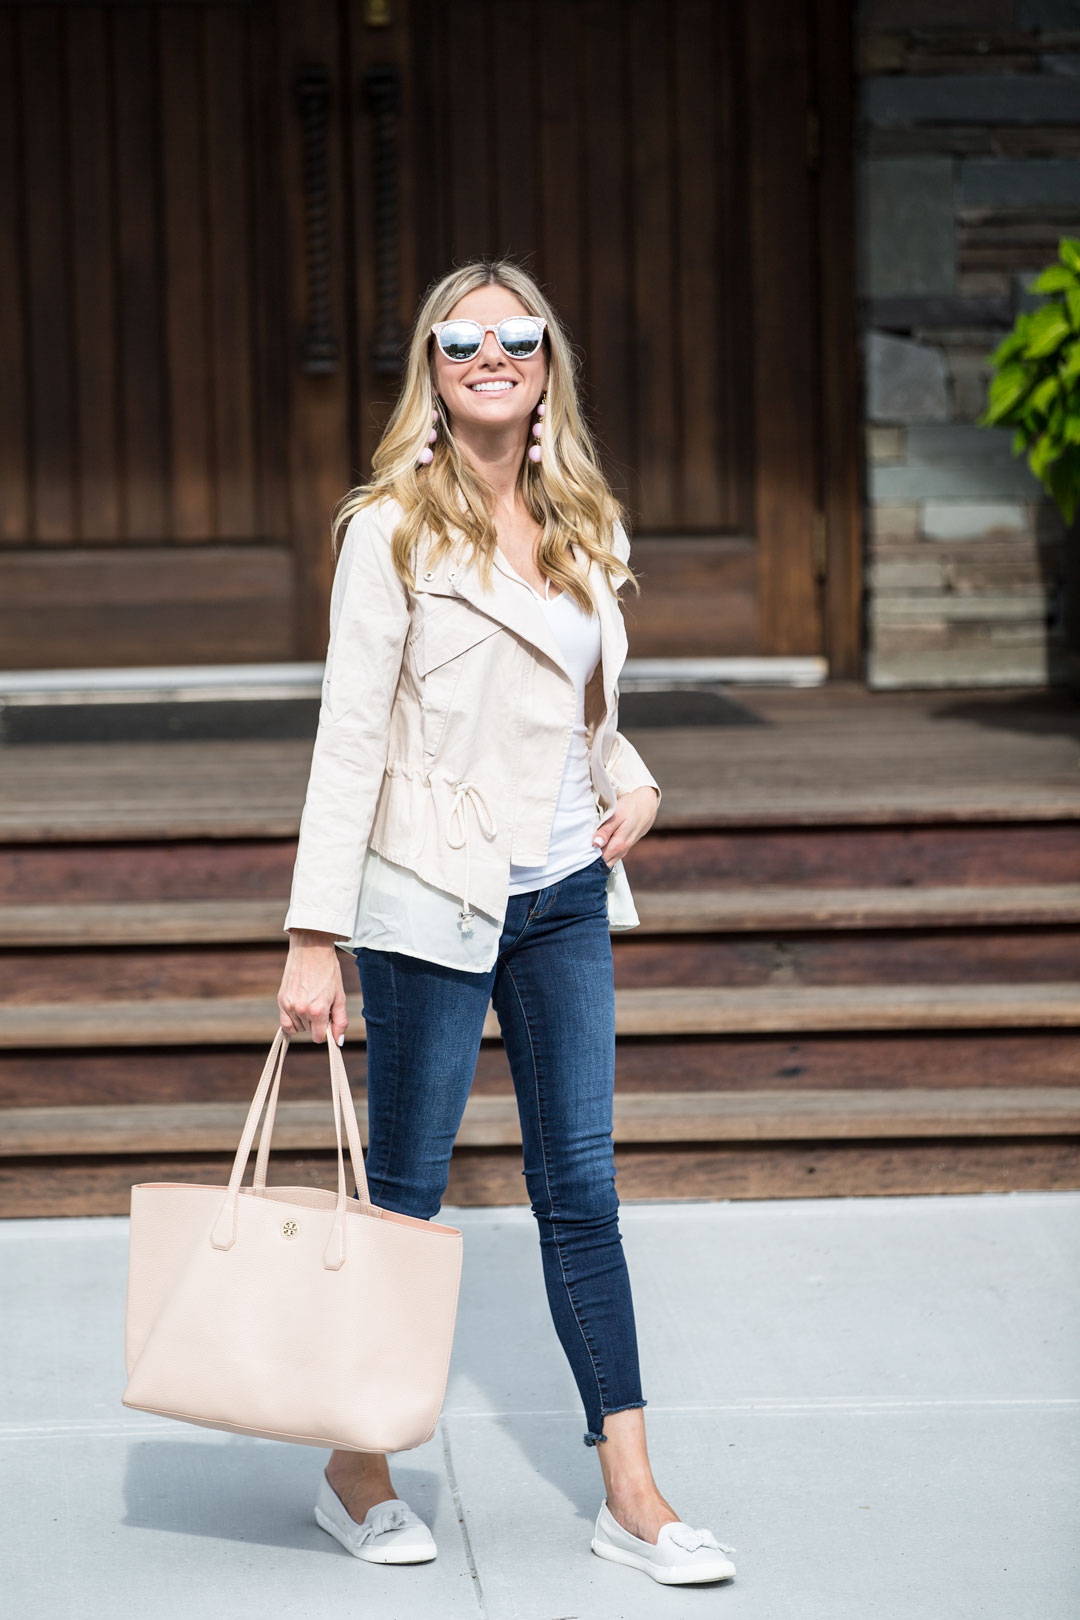 blush and denim outfit for fall